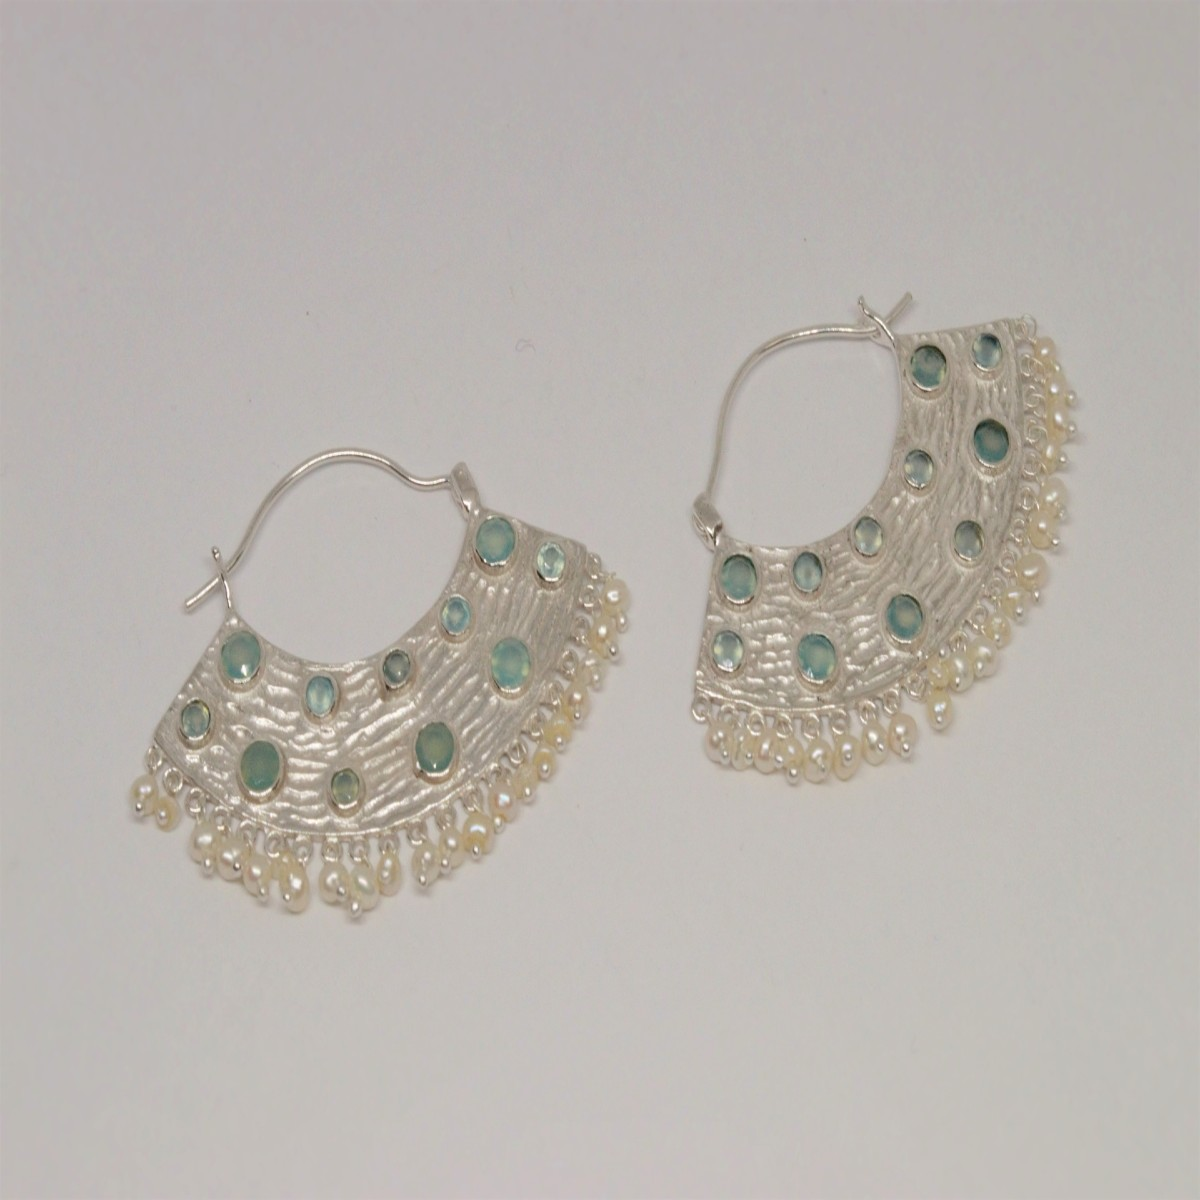 earrings Aqua chalcedony and pearl (2 gold, 1 silver)